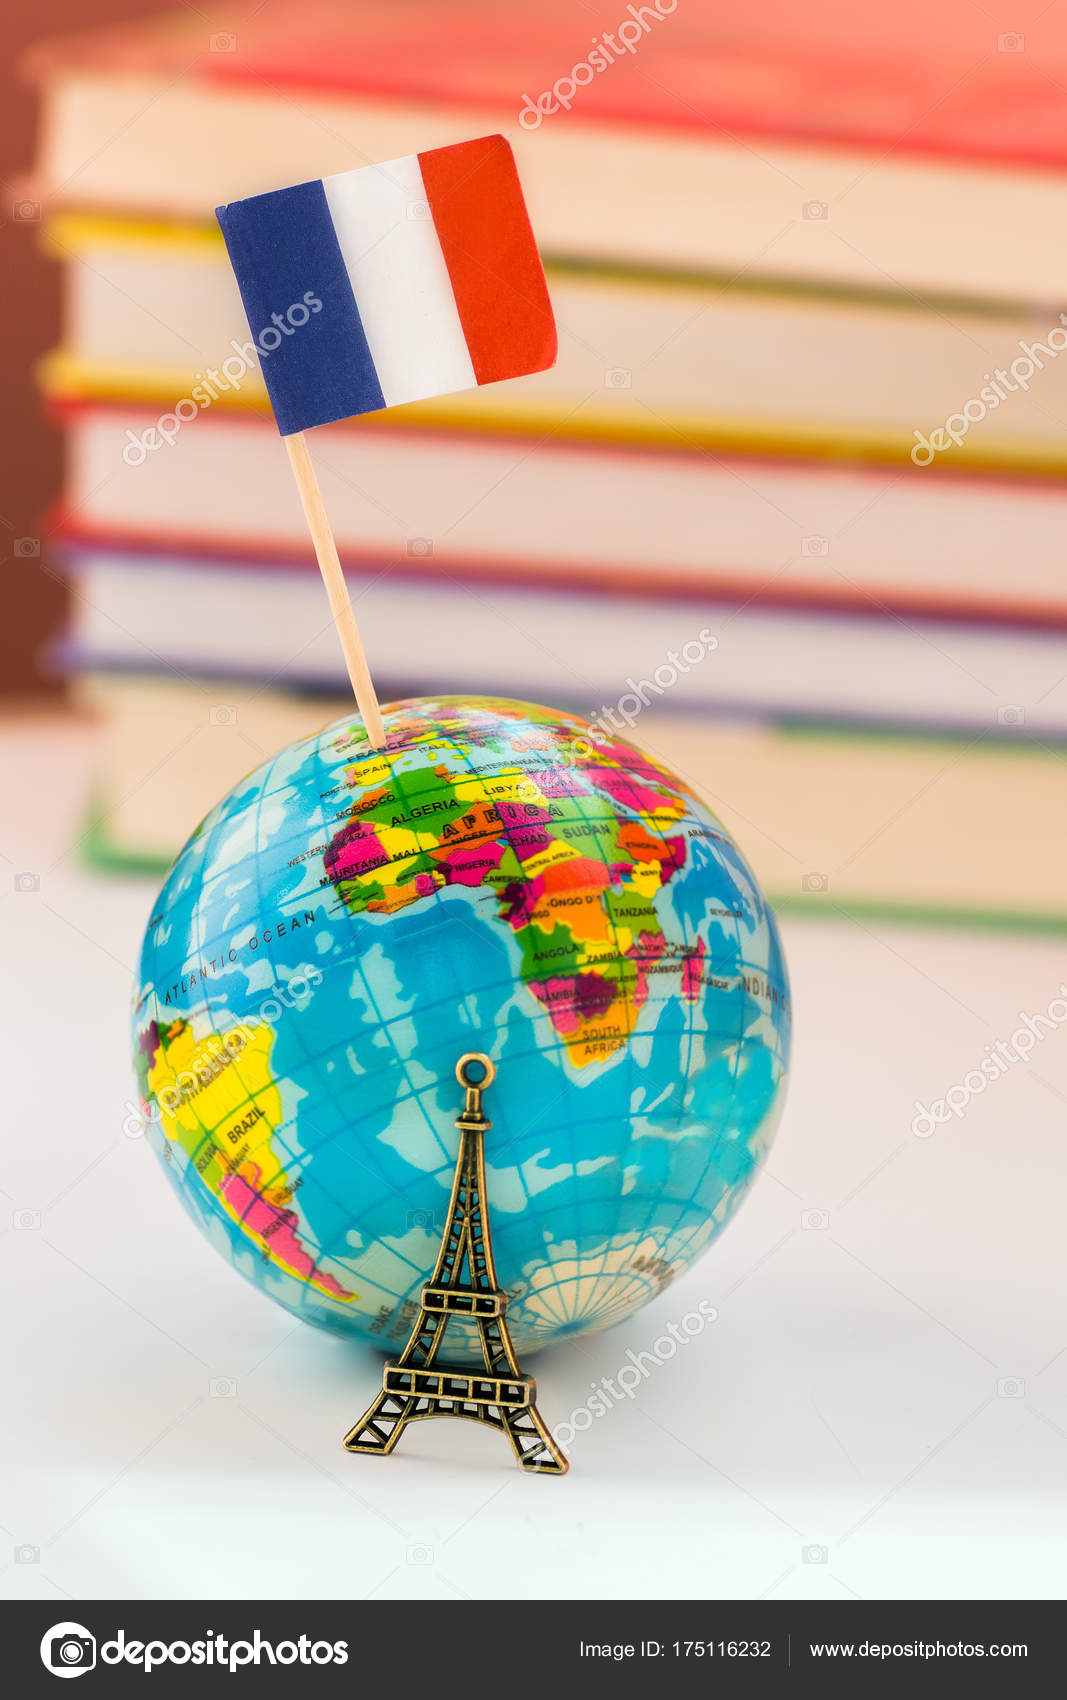 Assimil french download free books audio course ассимиль.